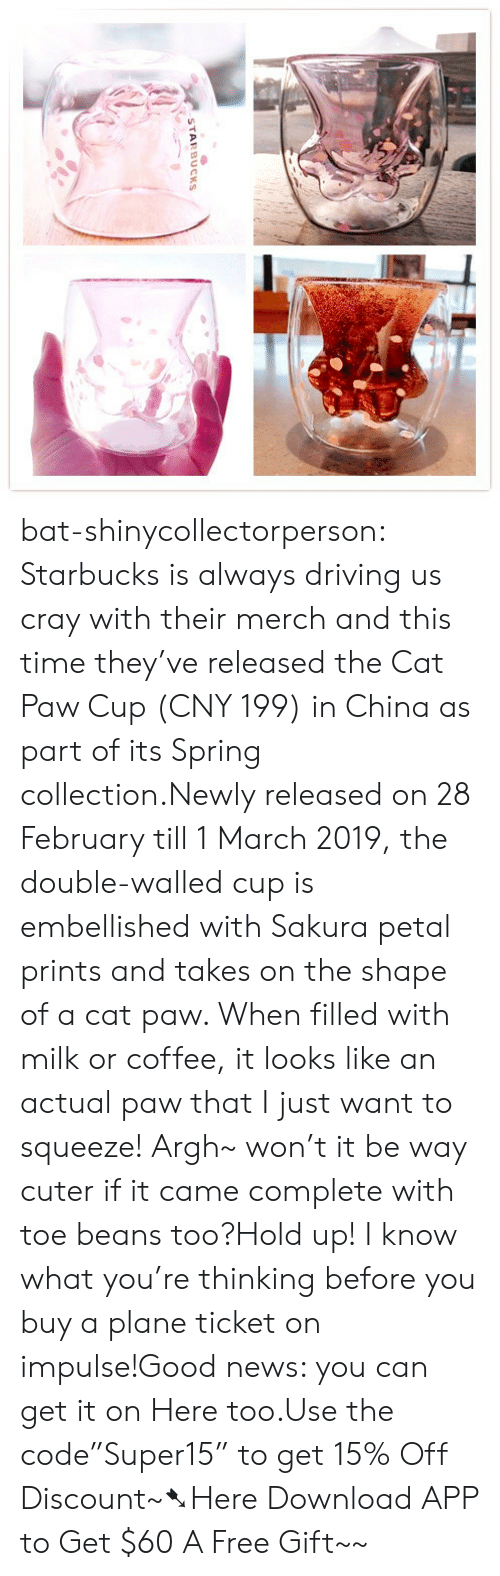 "Driving, News, and Starbucks: STARBUCKS bat-shinycollectorperson:  Starbucks is always driving us cray with their merch and this time they've released the Cat Paw Cup (CNY 199) in China as part of its Spring collection.Newly released on 28 February till 1 March 2019, the double-walled cup is embellished with Sakura petal prints and takes on the shape of a cat paw. When filled with milk or coffee, it looks like an actual paw that I just want to squeeze! Argh~ won't it be way cuter if it came complete with toe beans too?Hold up! I know what you're thinking before you buy a plane ticket on impulse!Good news: you can get it on Here too.Use the code""Super15"" to get 15% Off Discount~➷Here Download APP to Get $60  A Free Gift~~"